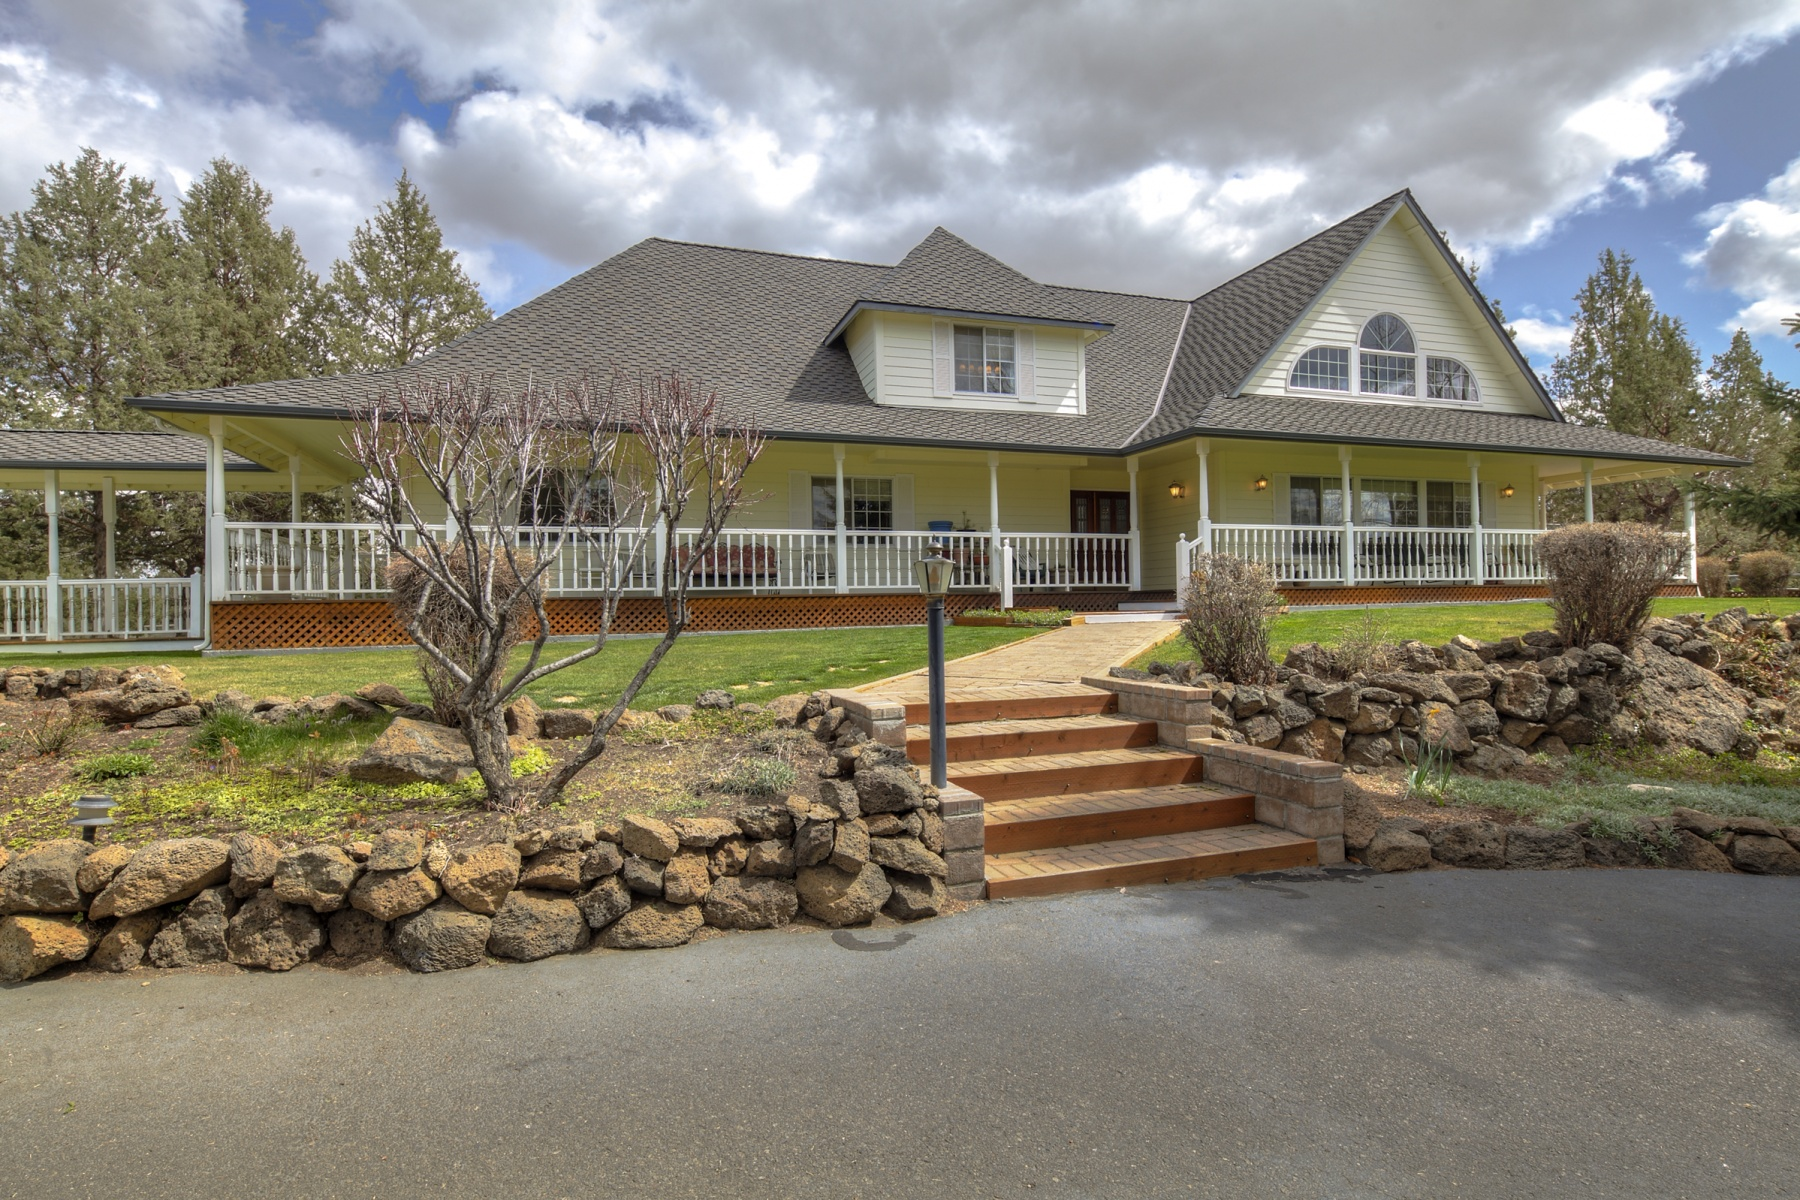 Single Family Home for Sale at 21936 Bear Creek Road 21936 Bear Creek Rd Bend, Oregon 97701 United States